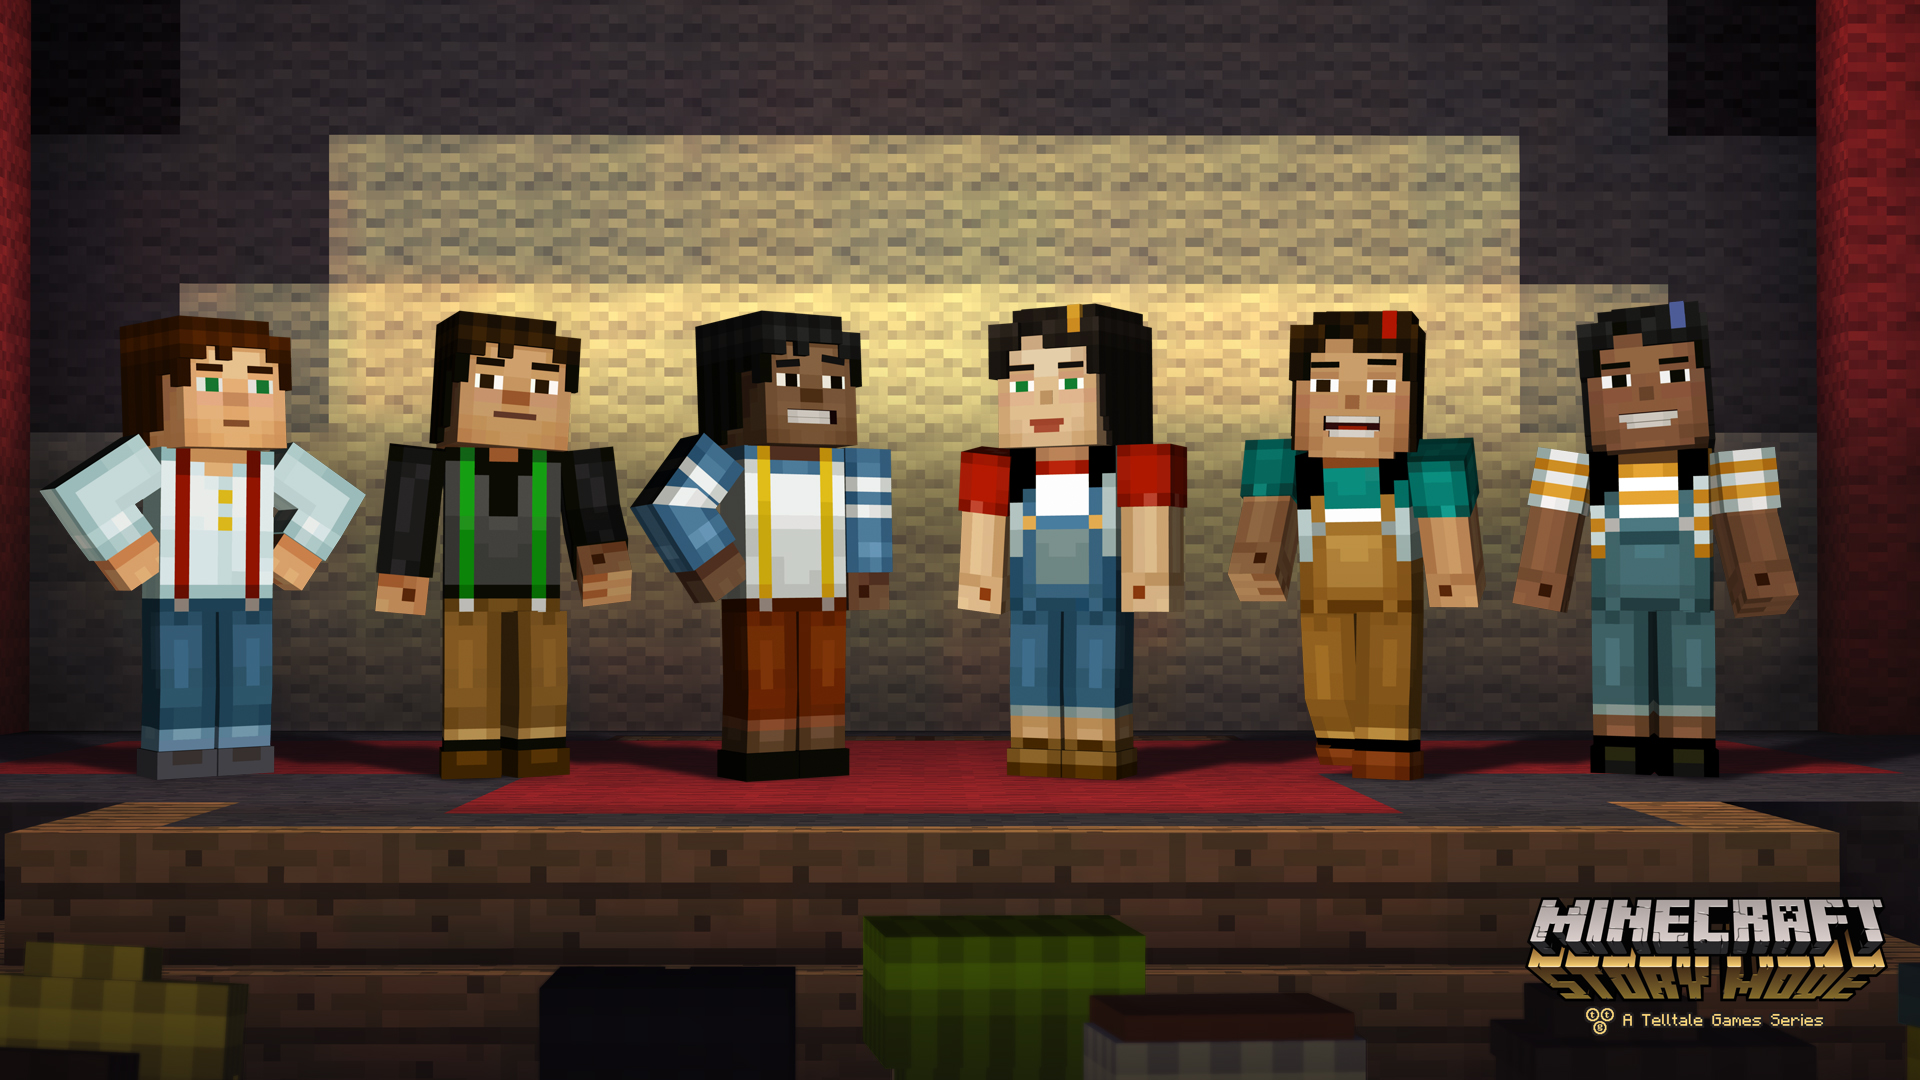 Minecraft Story Mode A Telltale Games Series Launches On Xbox